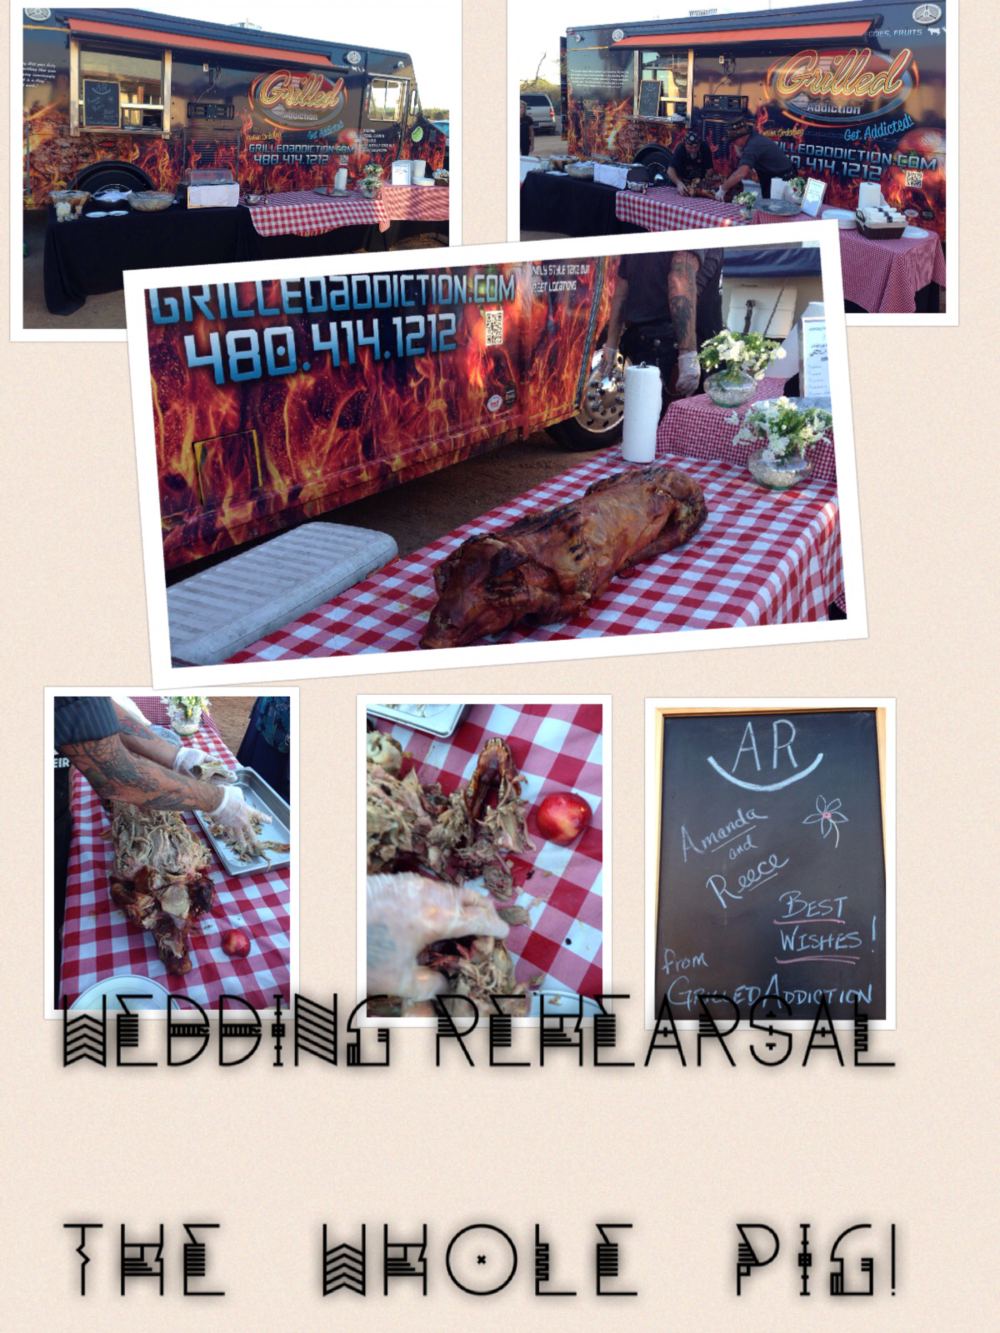 REHEARSAL DINNER PARTY!  WHOLE HOG!